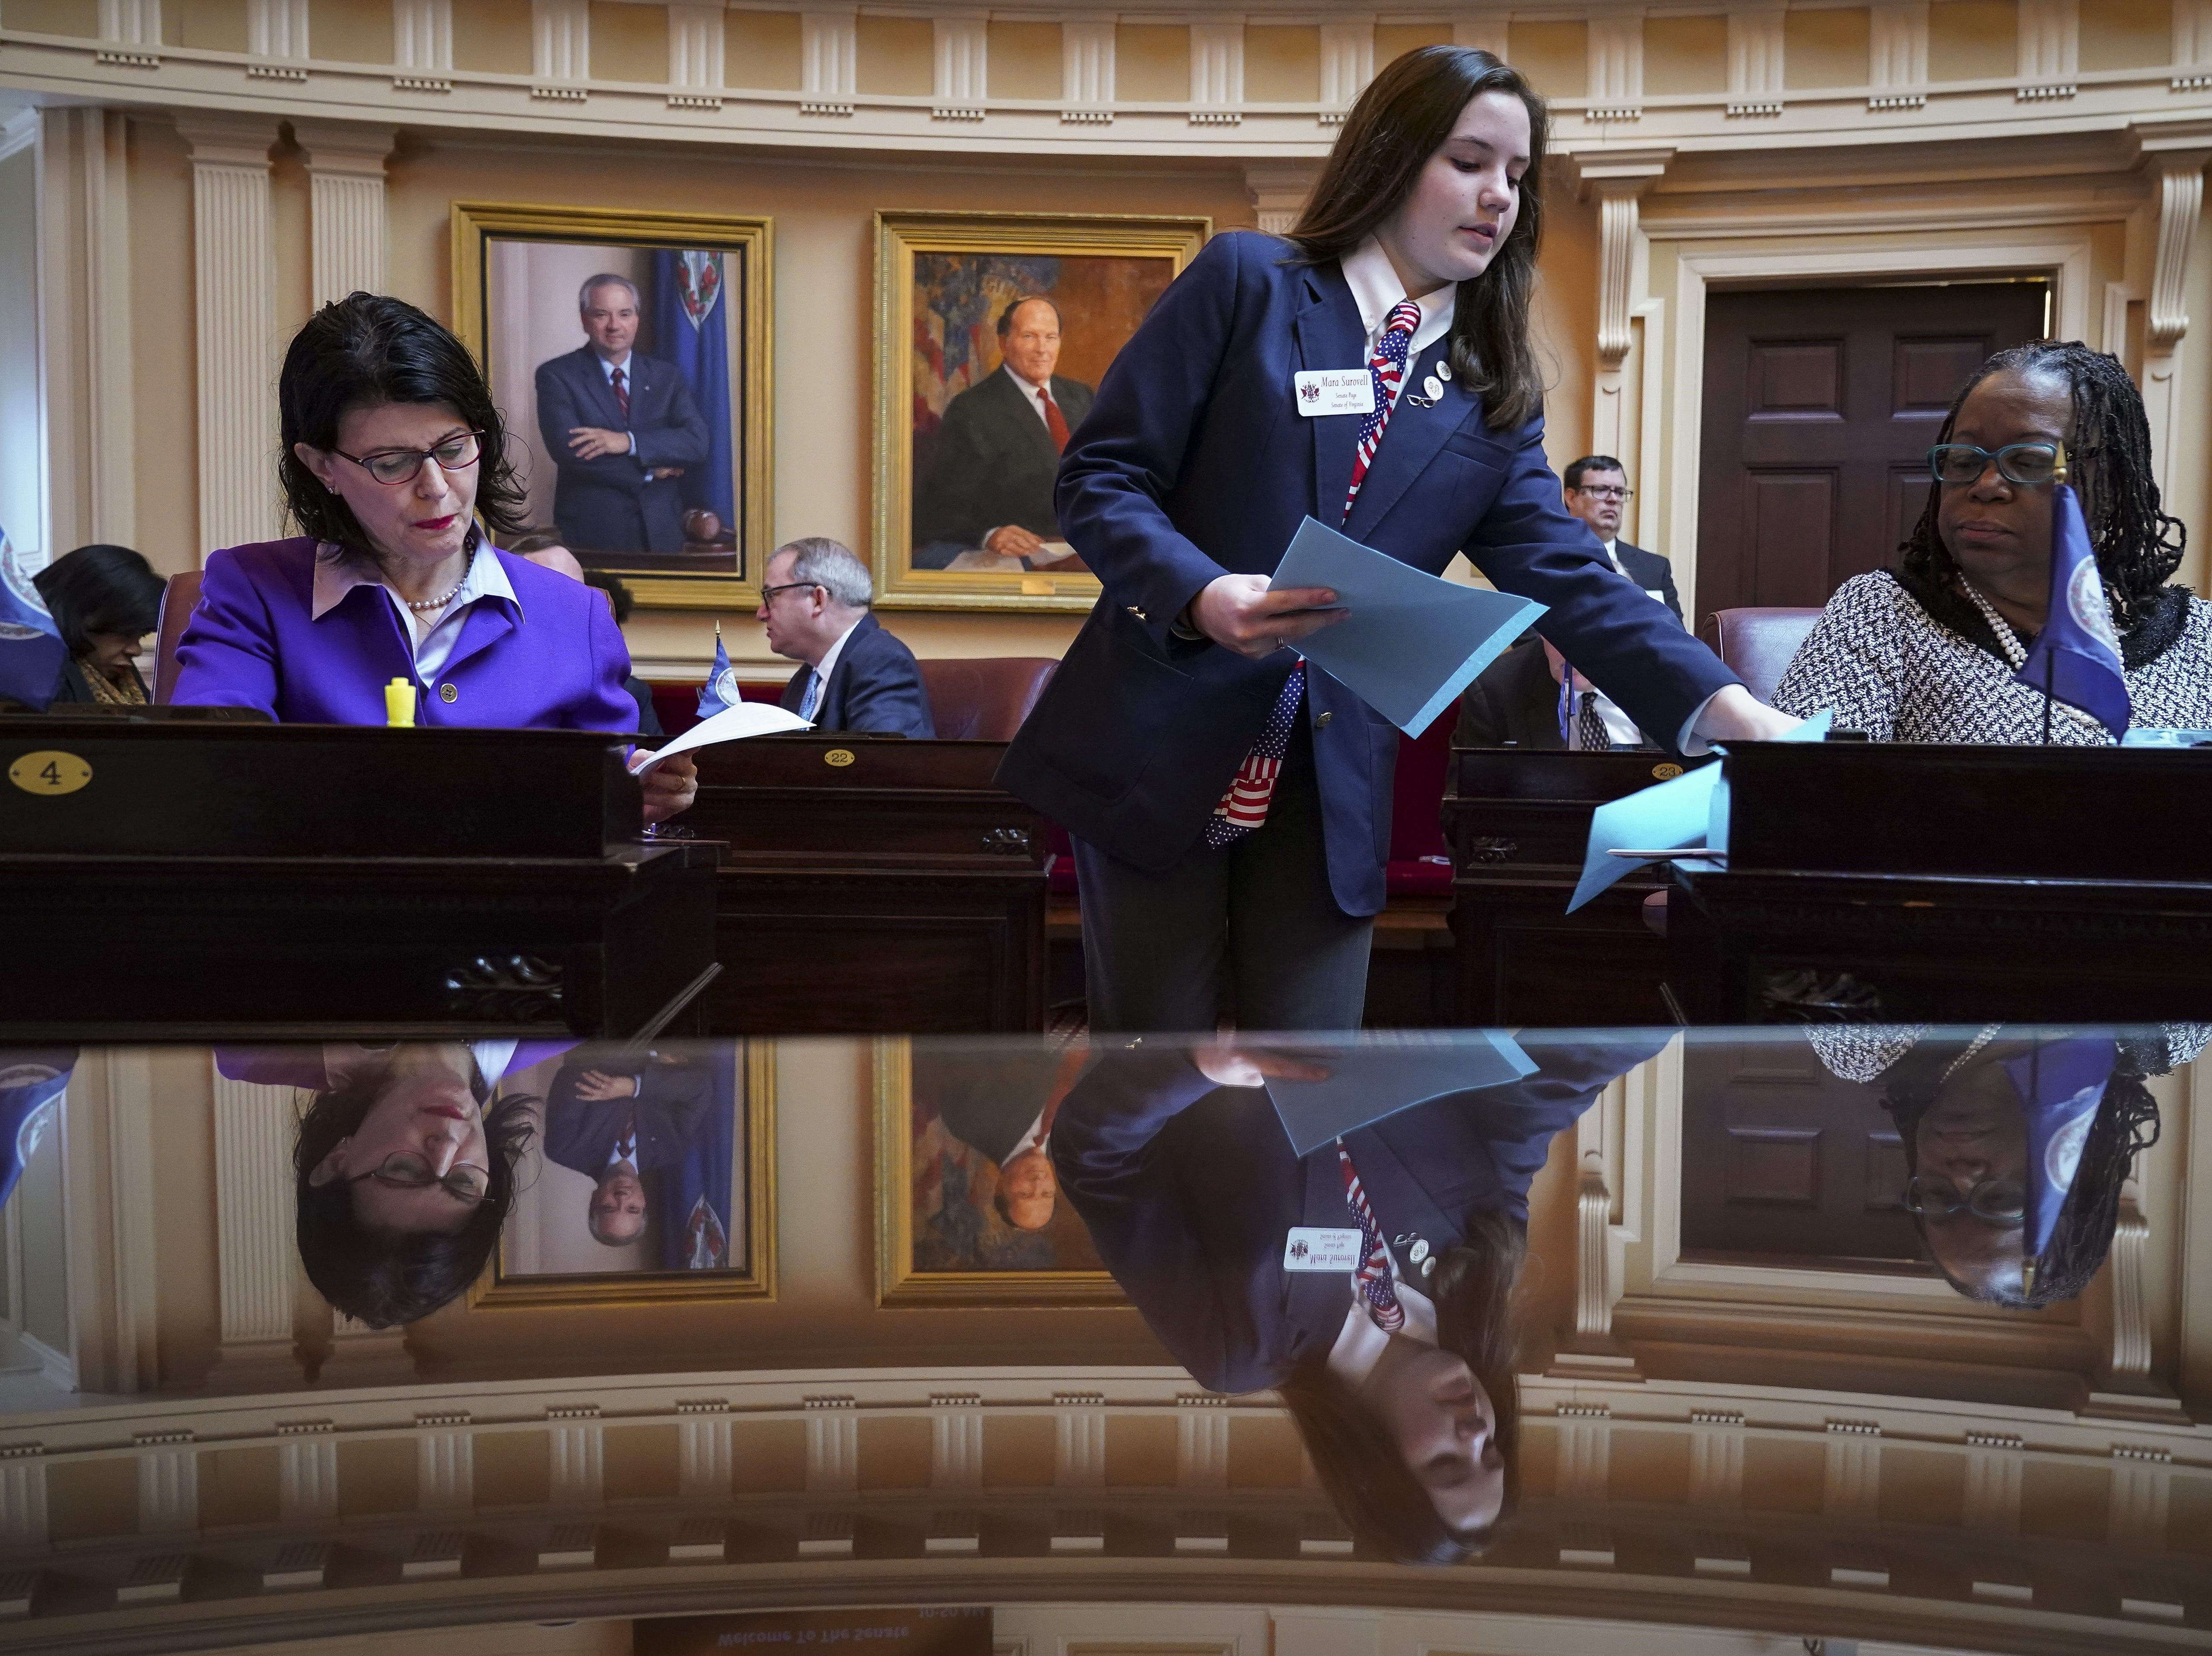 A Senate page hands out documents to lawmakers, including State Senator Mamie Locke, right, during a Senate session at the Virginia State Capitol, February 8, 2019 in Richmond, Va.